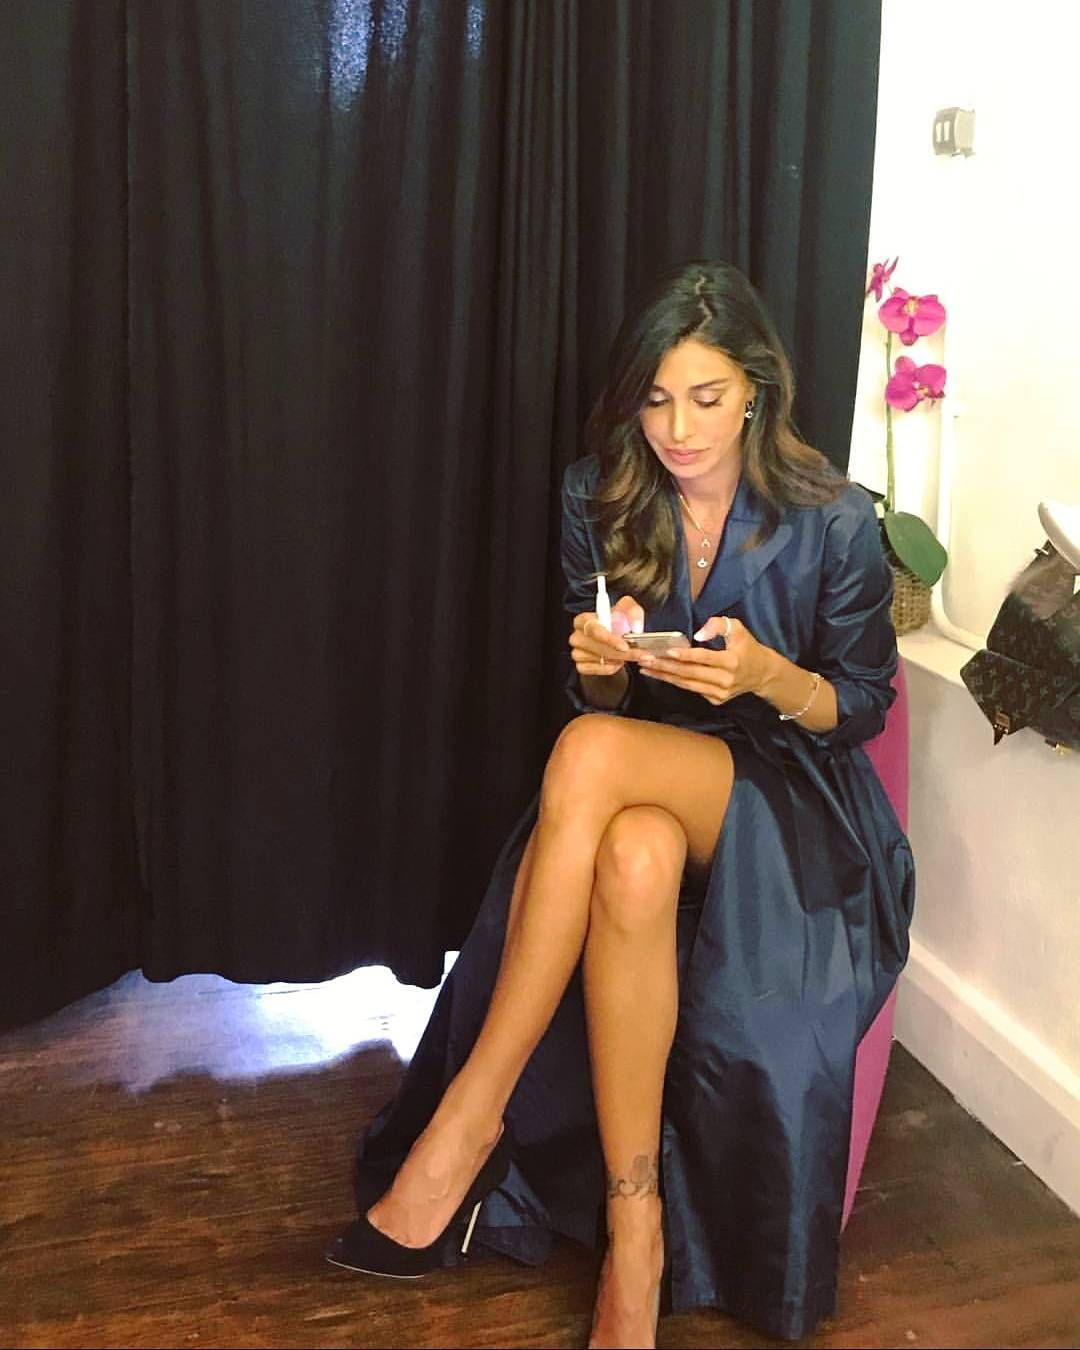 Hacked Belen Rodriguez nudes (85 foto and video), Tits, Paparazzi, Instagram, butt 2019